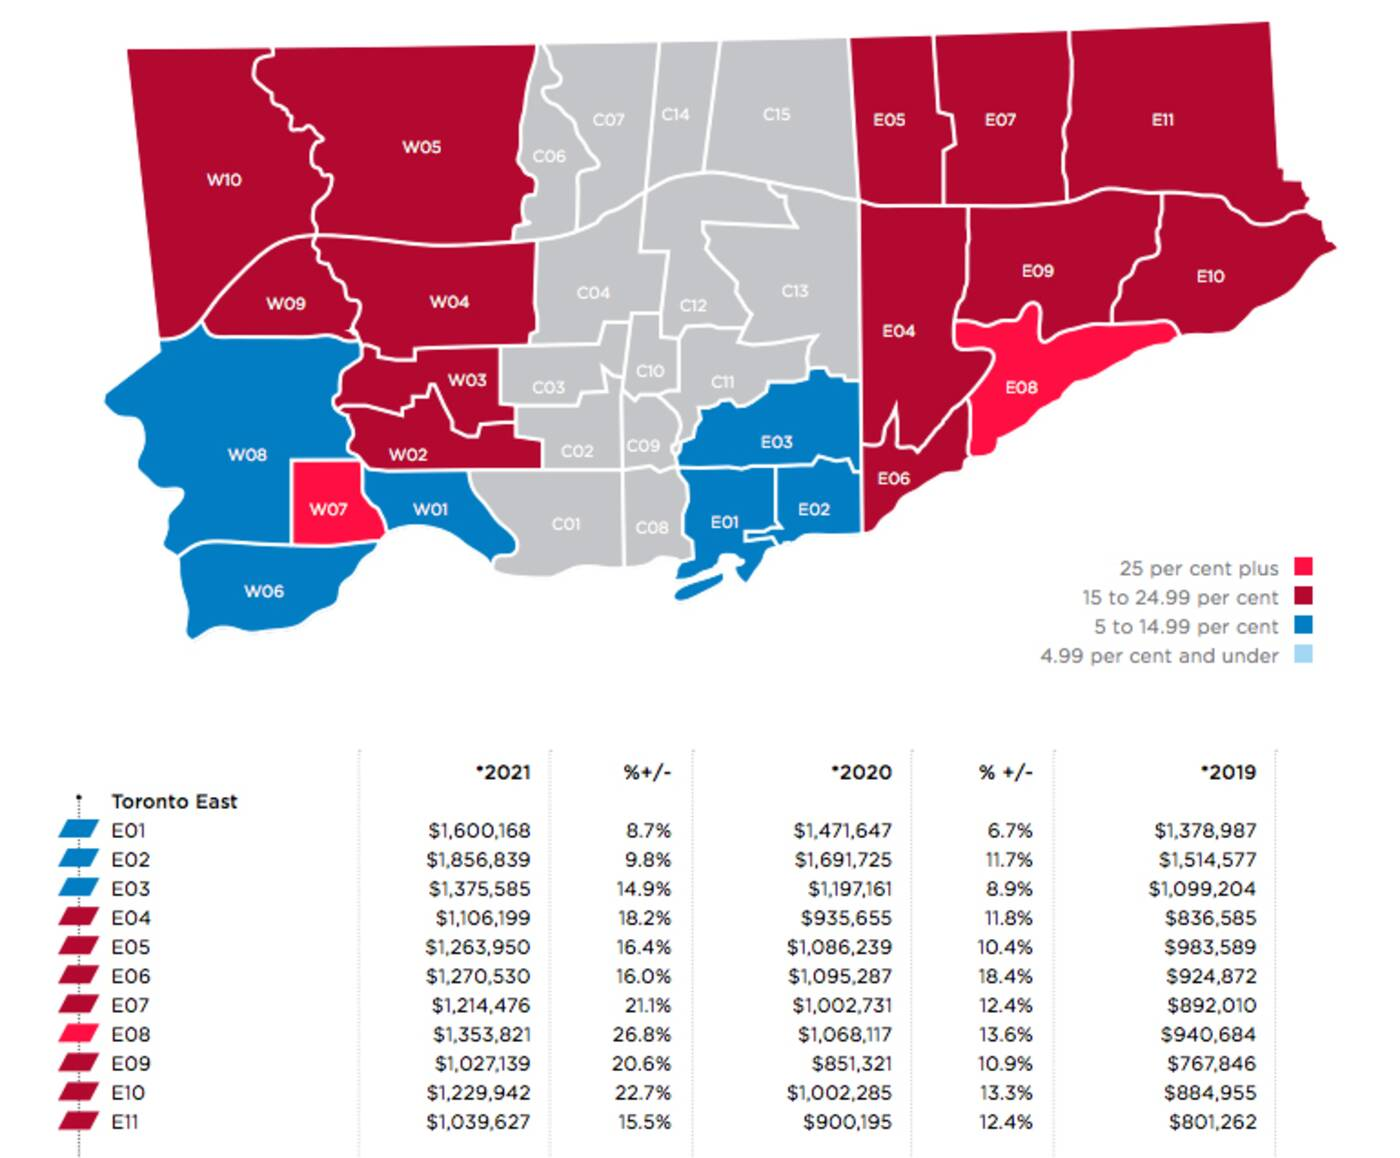 gta home prices